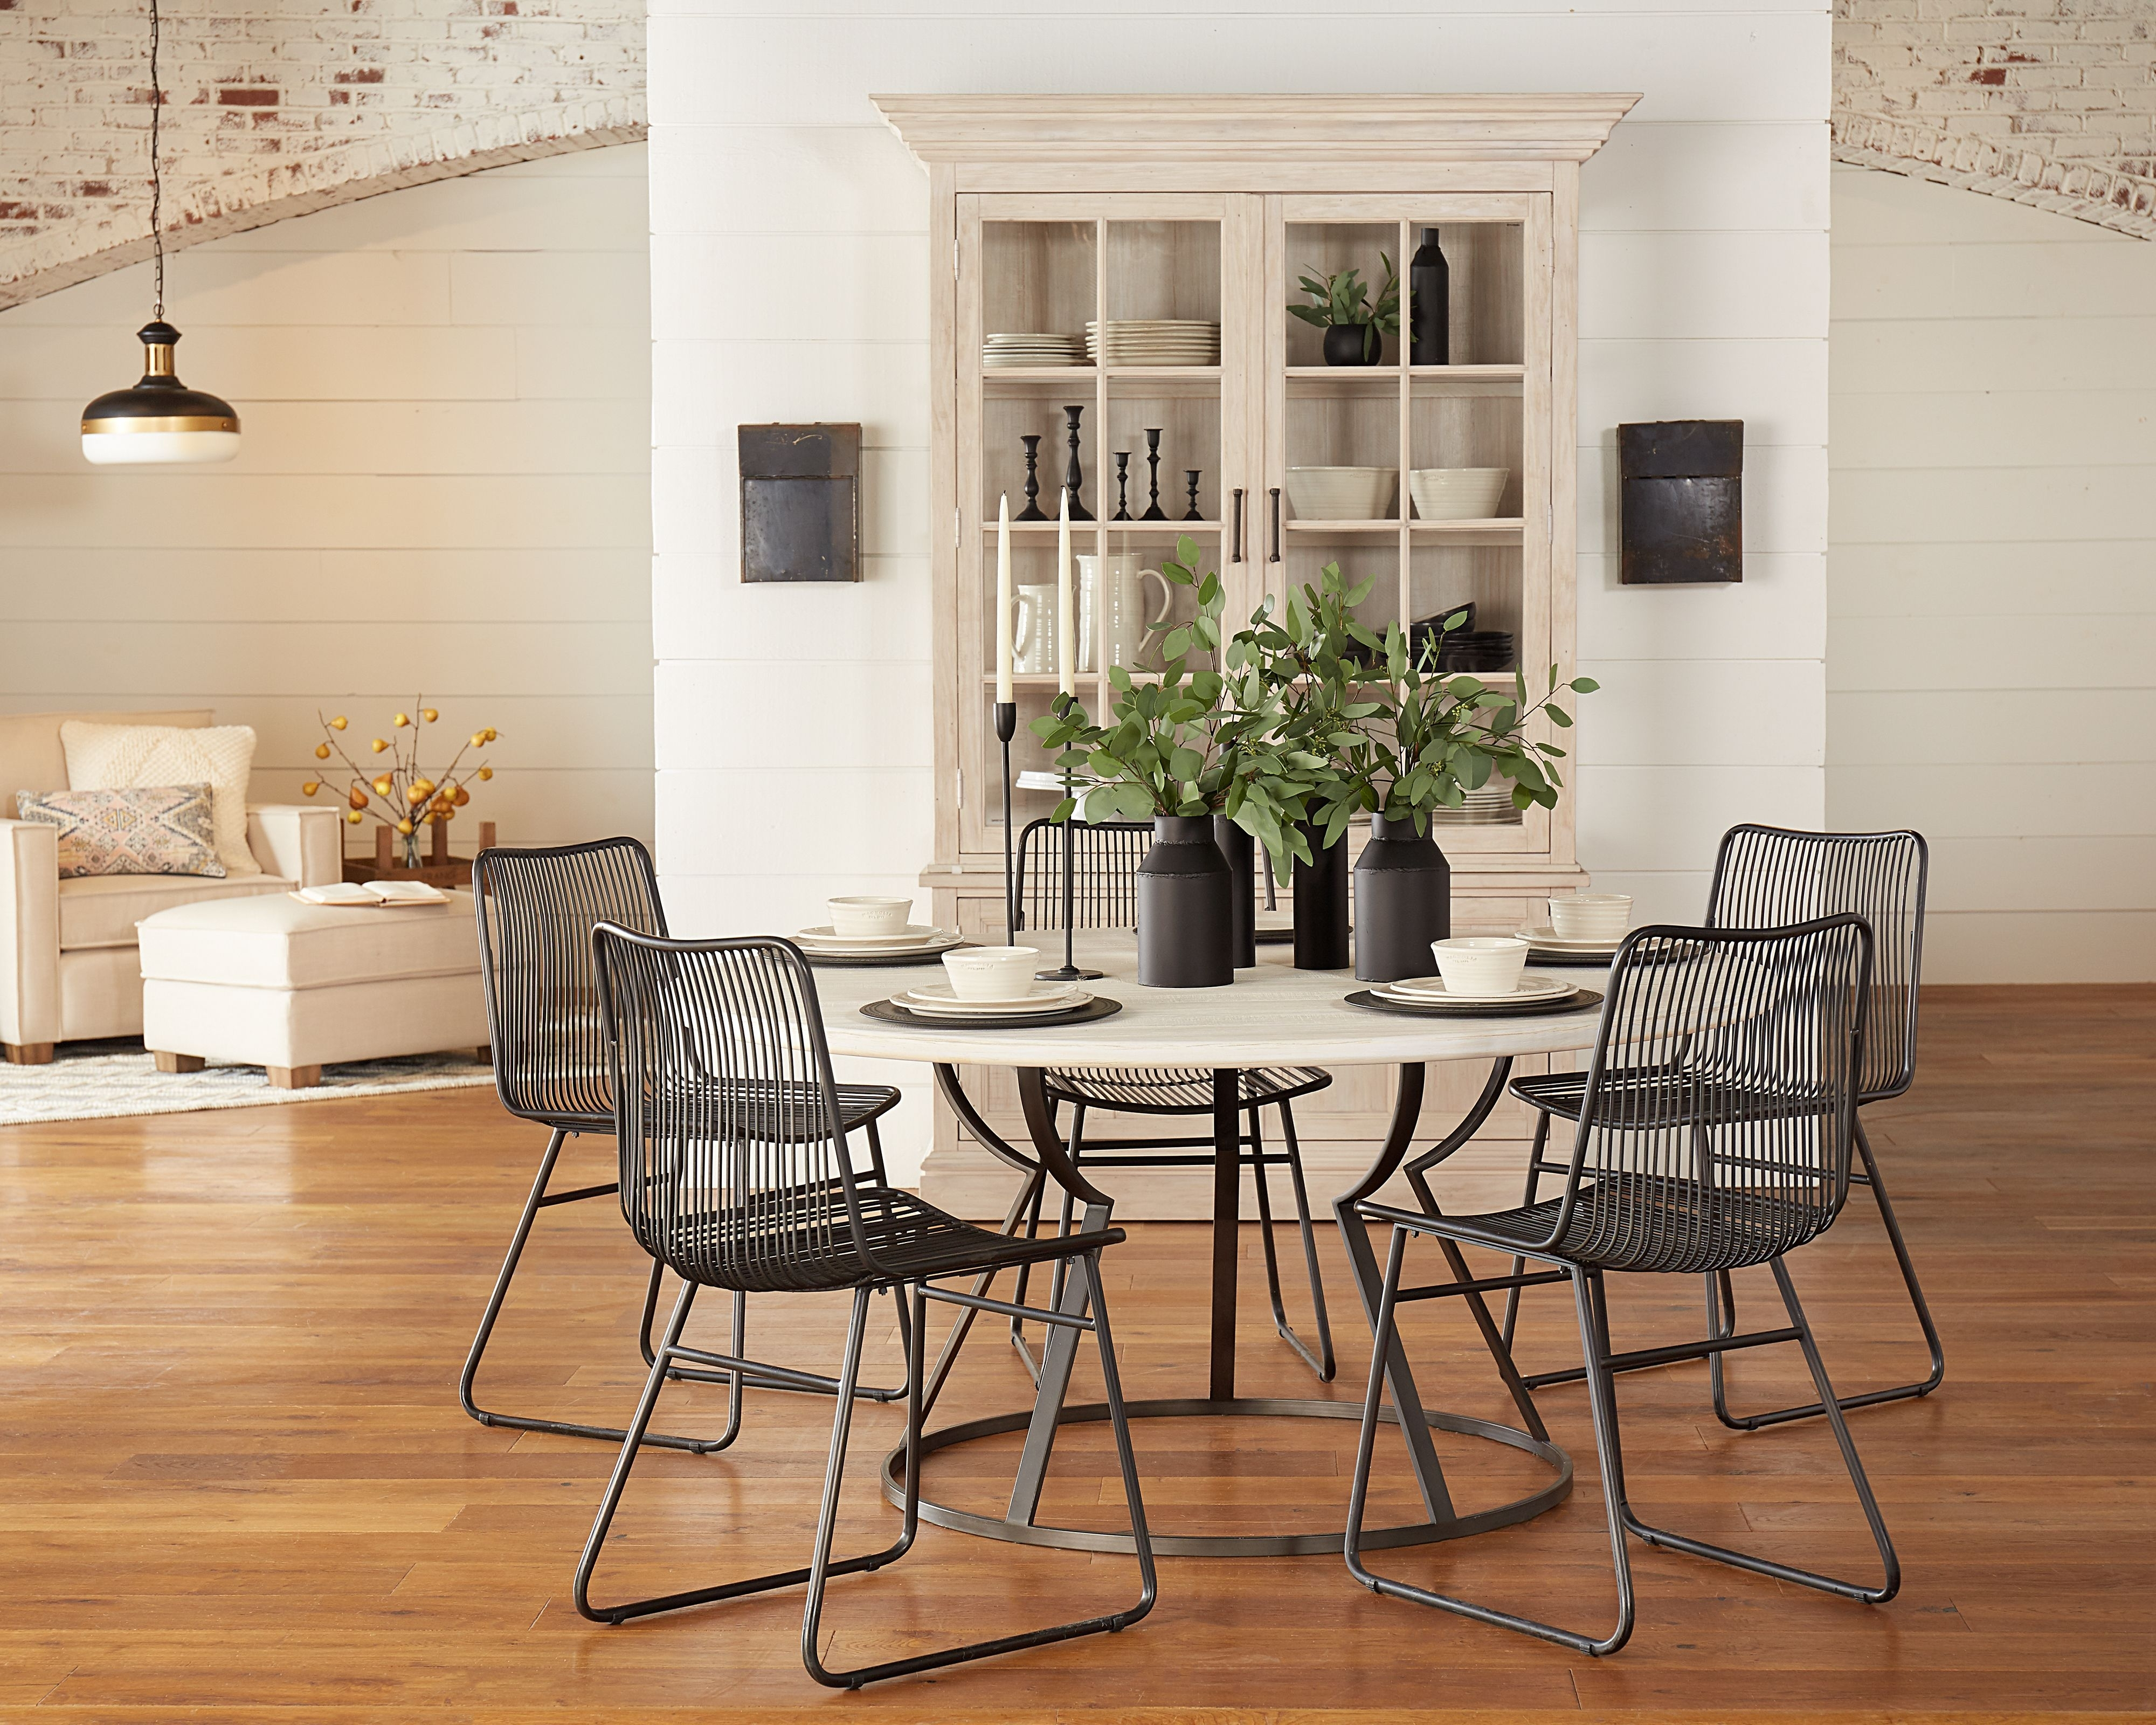 Belford Dining Table With Dru Metal Chairs – Magnolia Home | Heart Throughout Latest Magnolia Home Breakfast Round Black Dining Tables (Image 3 of 20)